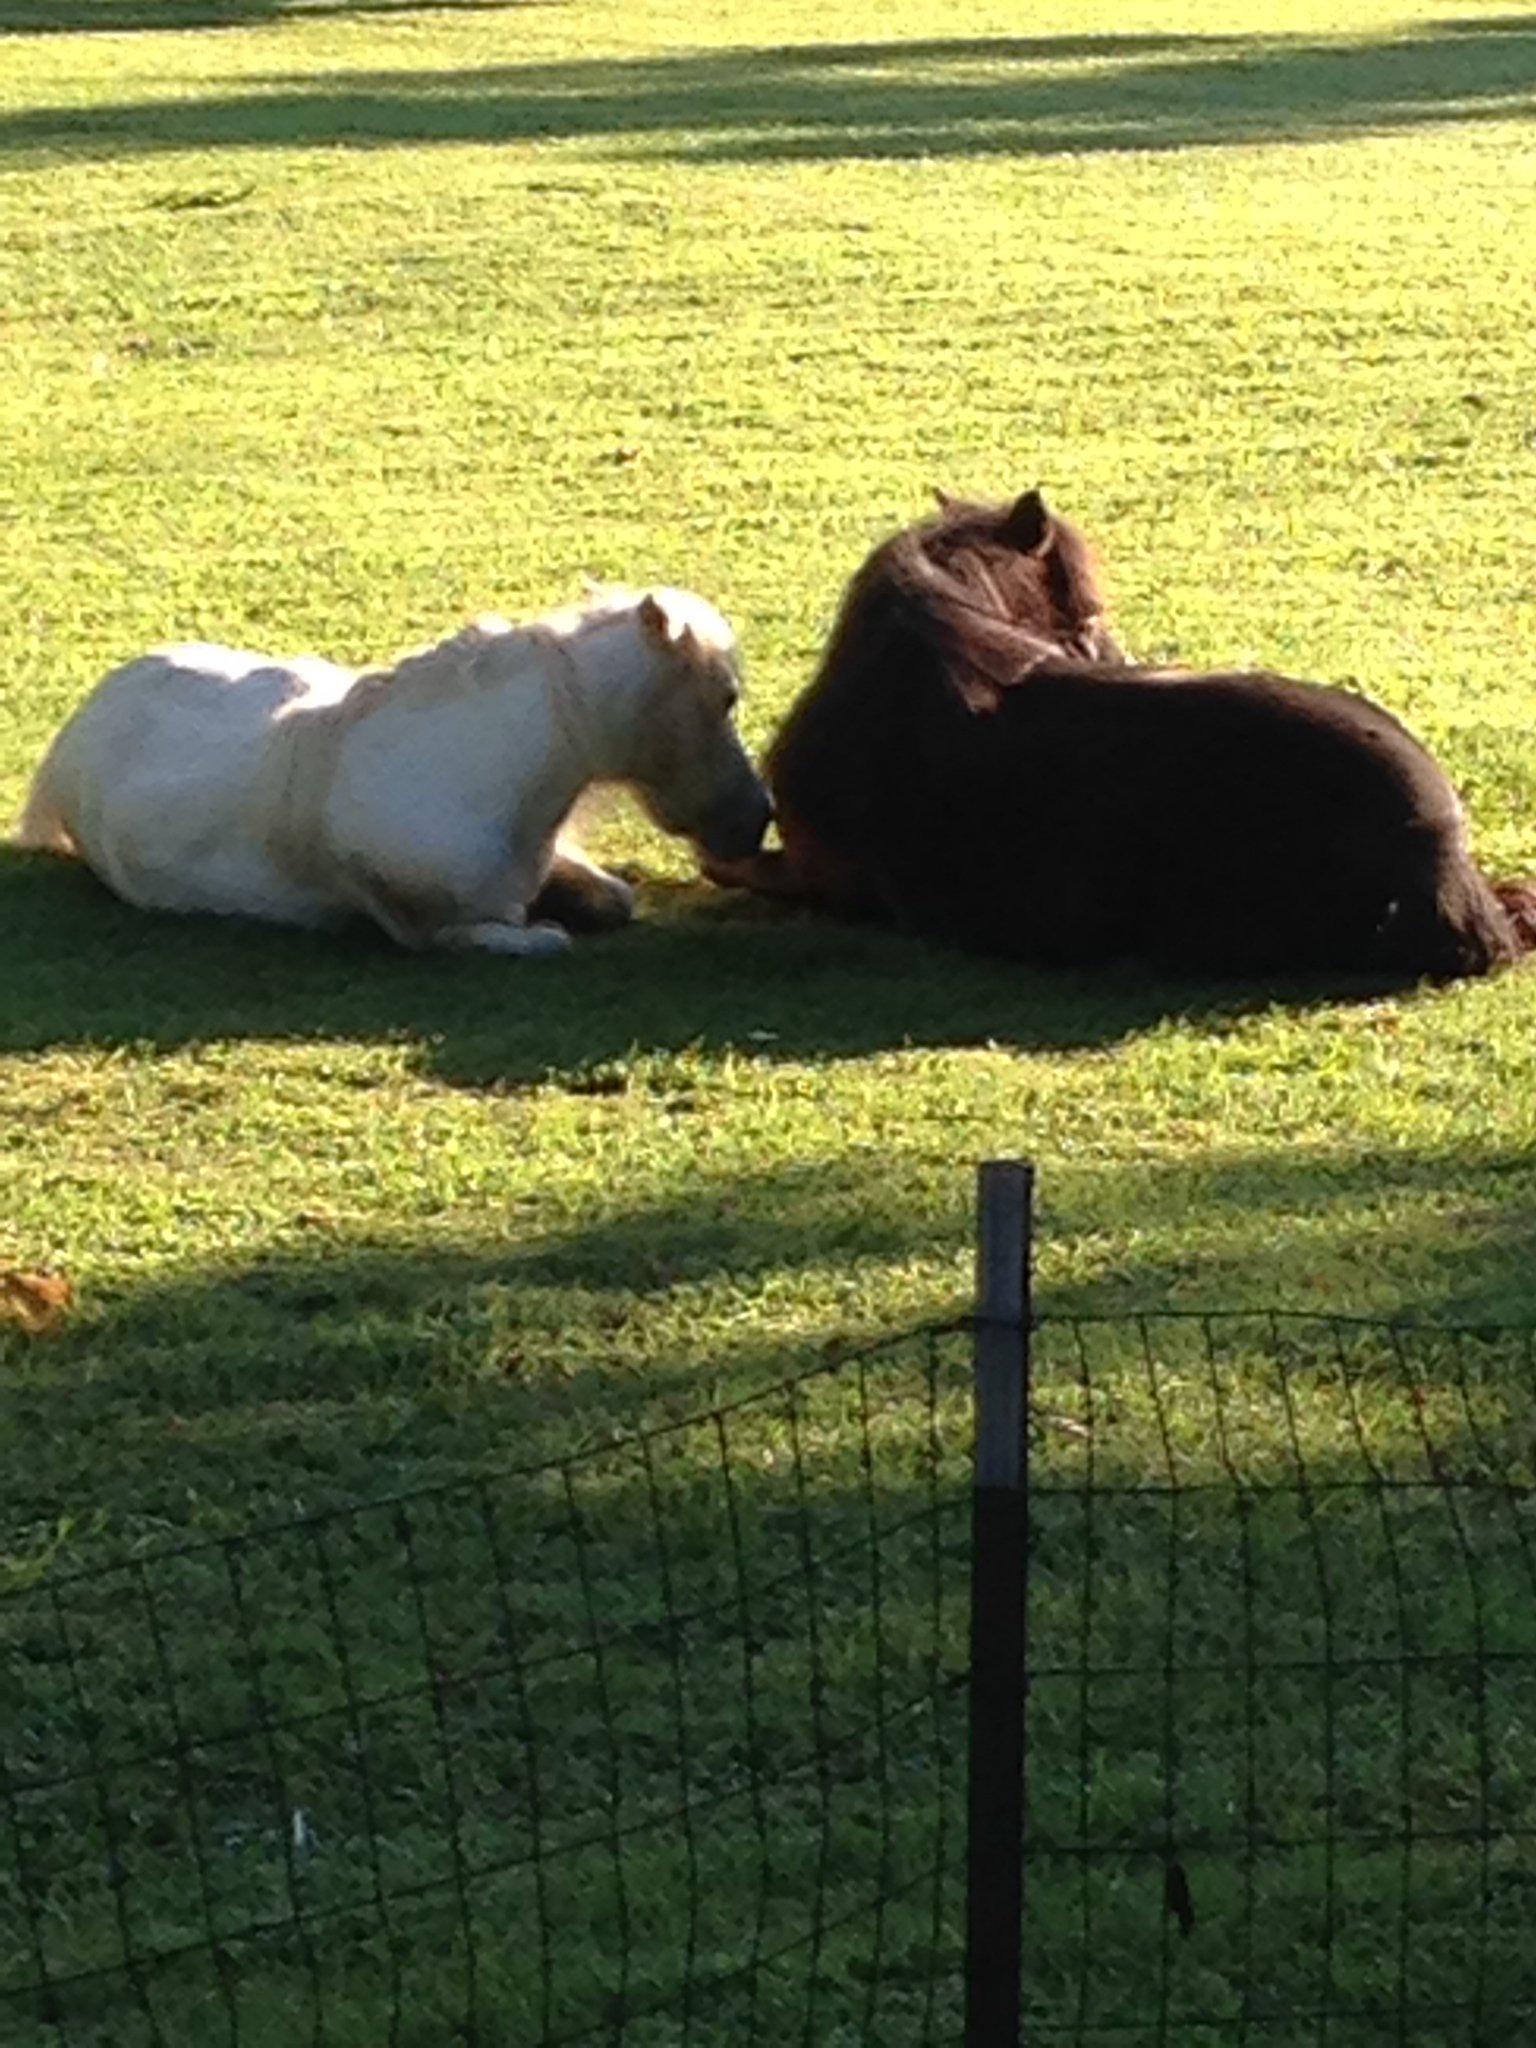 It was a heart-wrenching discovery for a St. Joseph family when they found their beloved miniature horses were brutally attacked by dogs in their backyard. (Submitted)